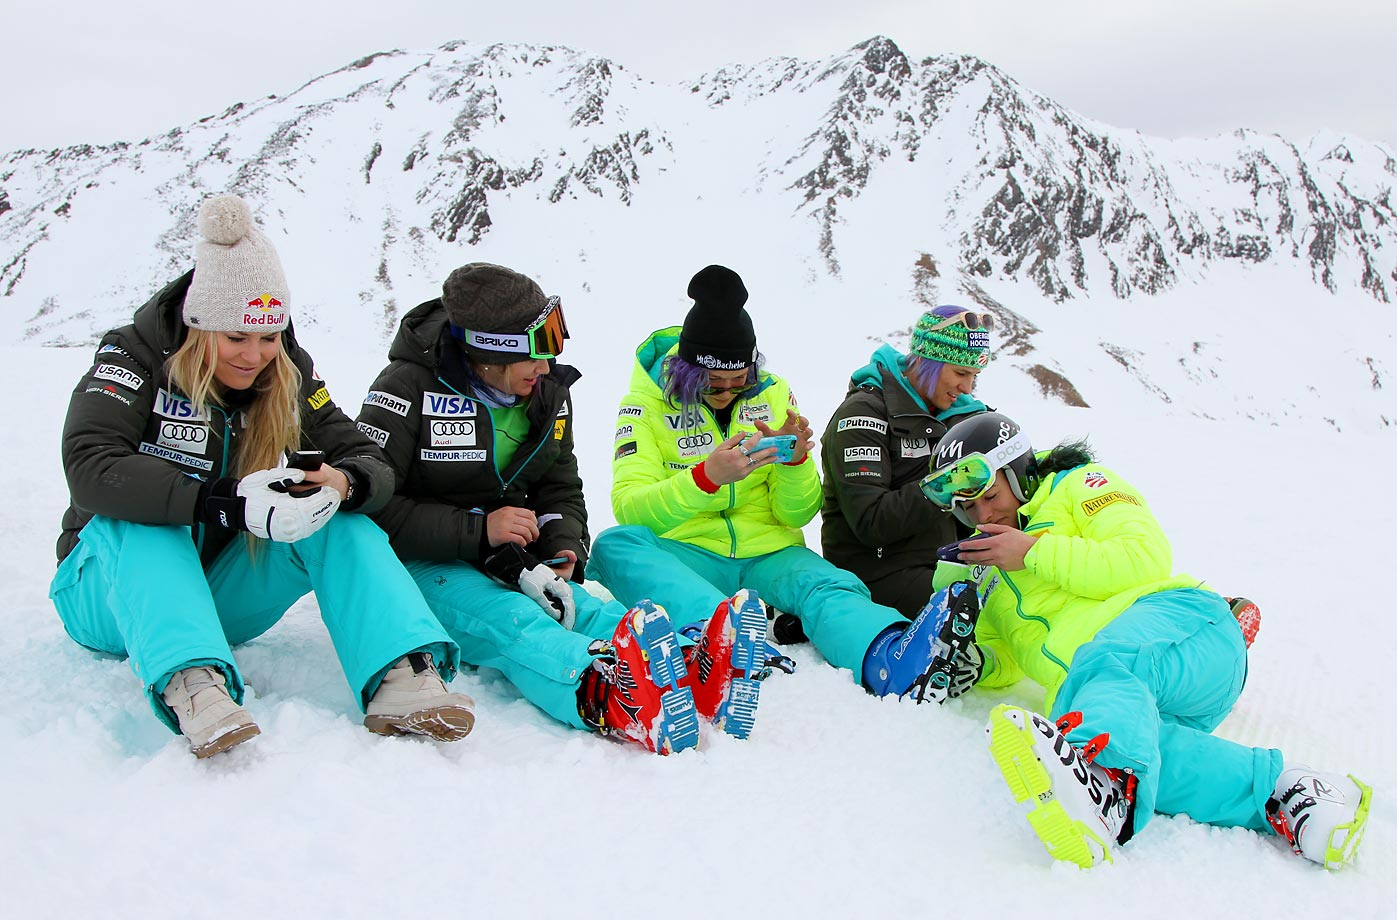 U.S. ski team members Lindsey Vonn, Alice Mckennis, Laurenne Ross, Megan Harrod and Stacey Cook take a peaceful break while in Soelden, Austria.